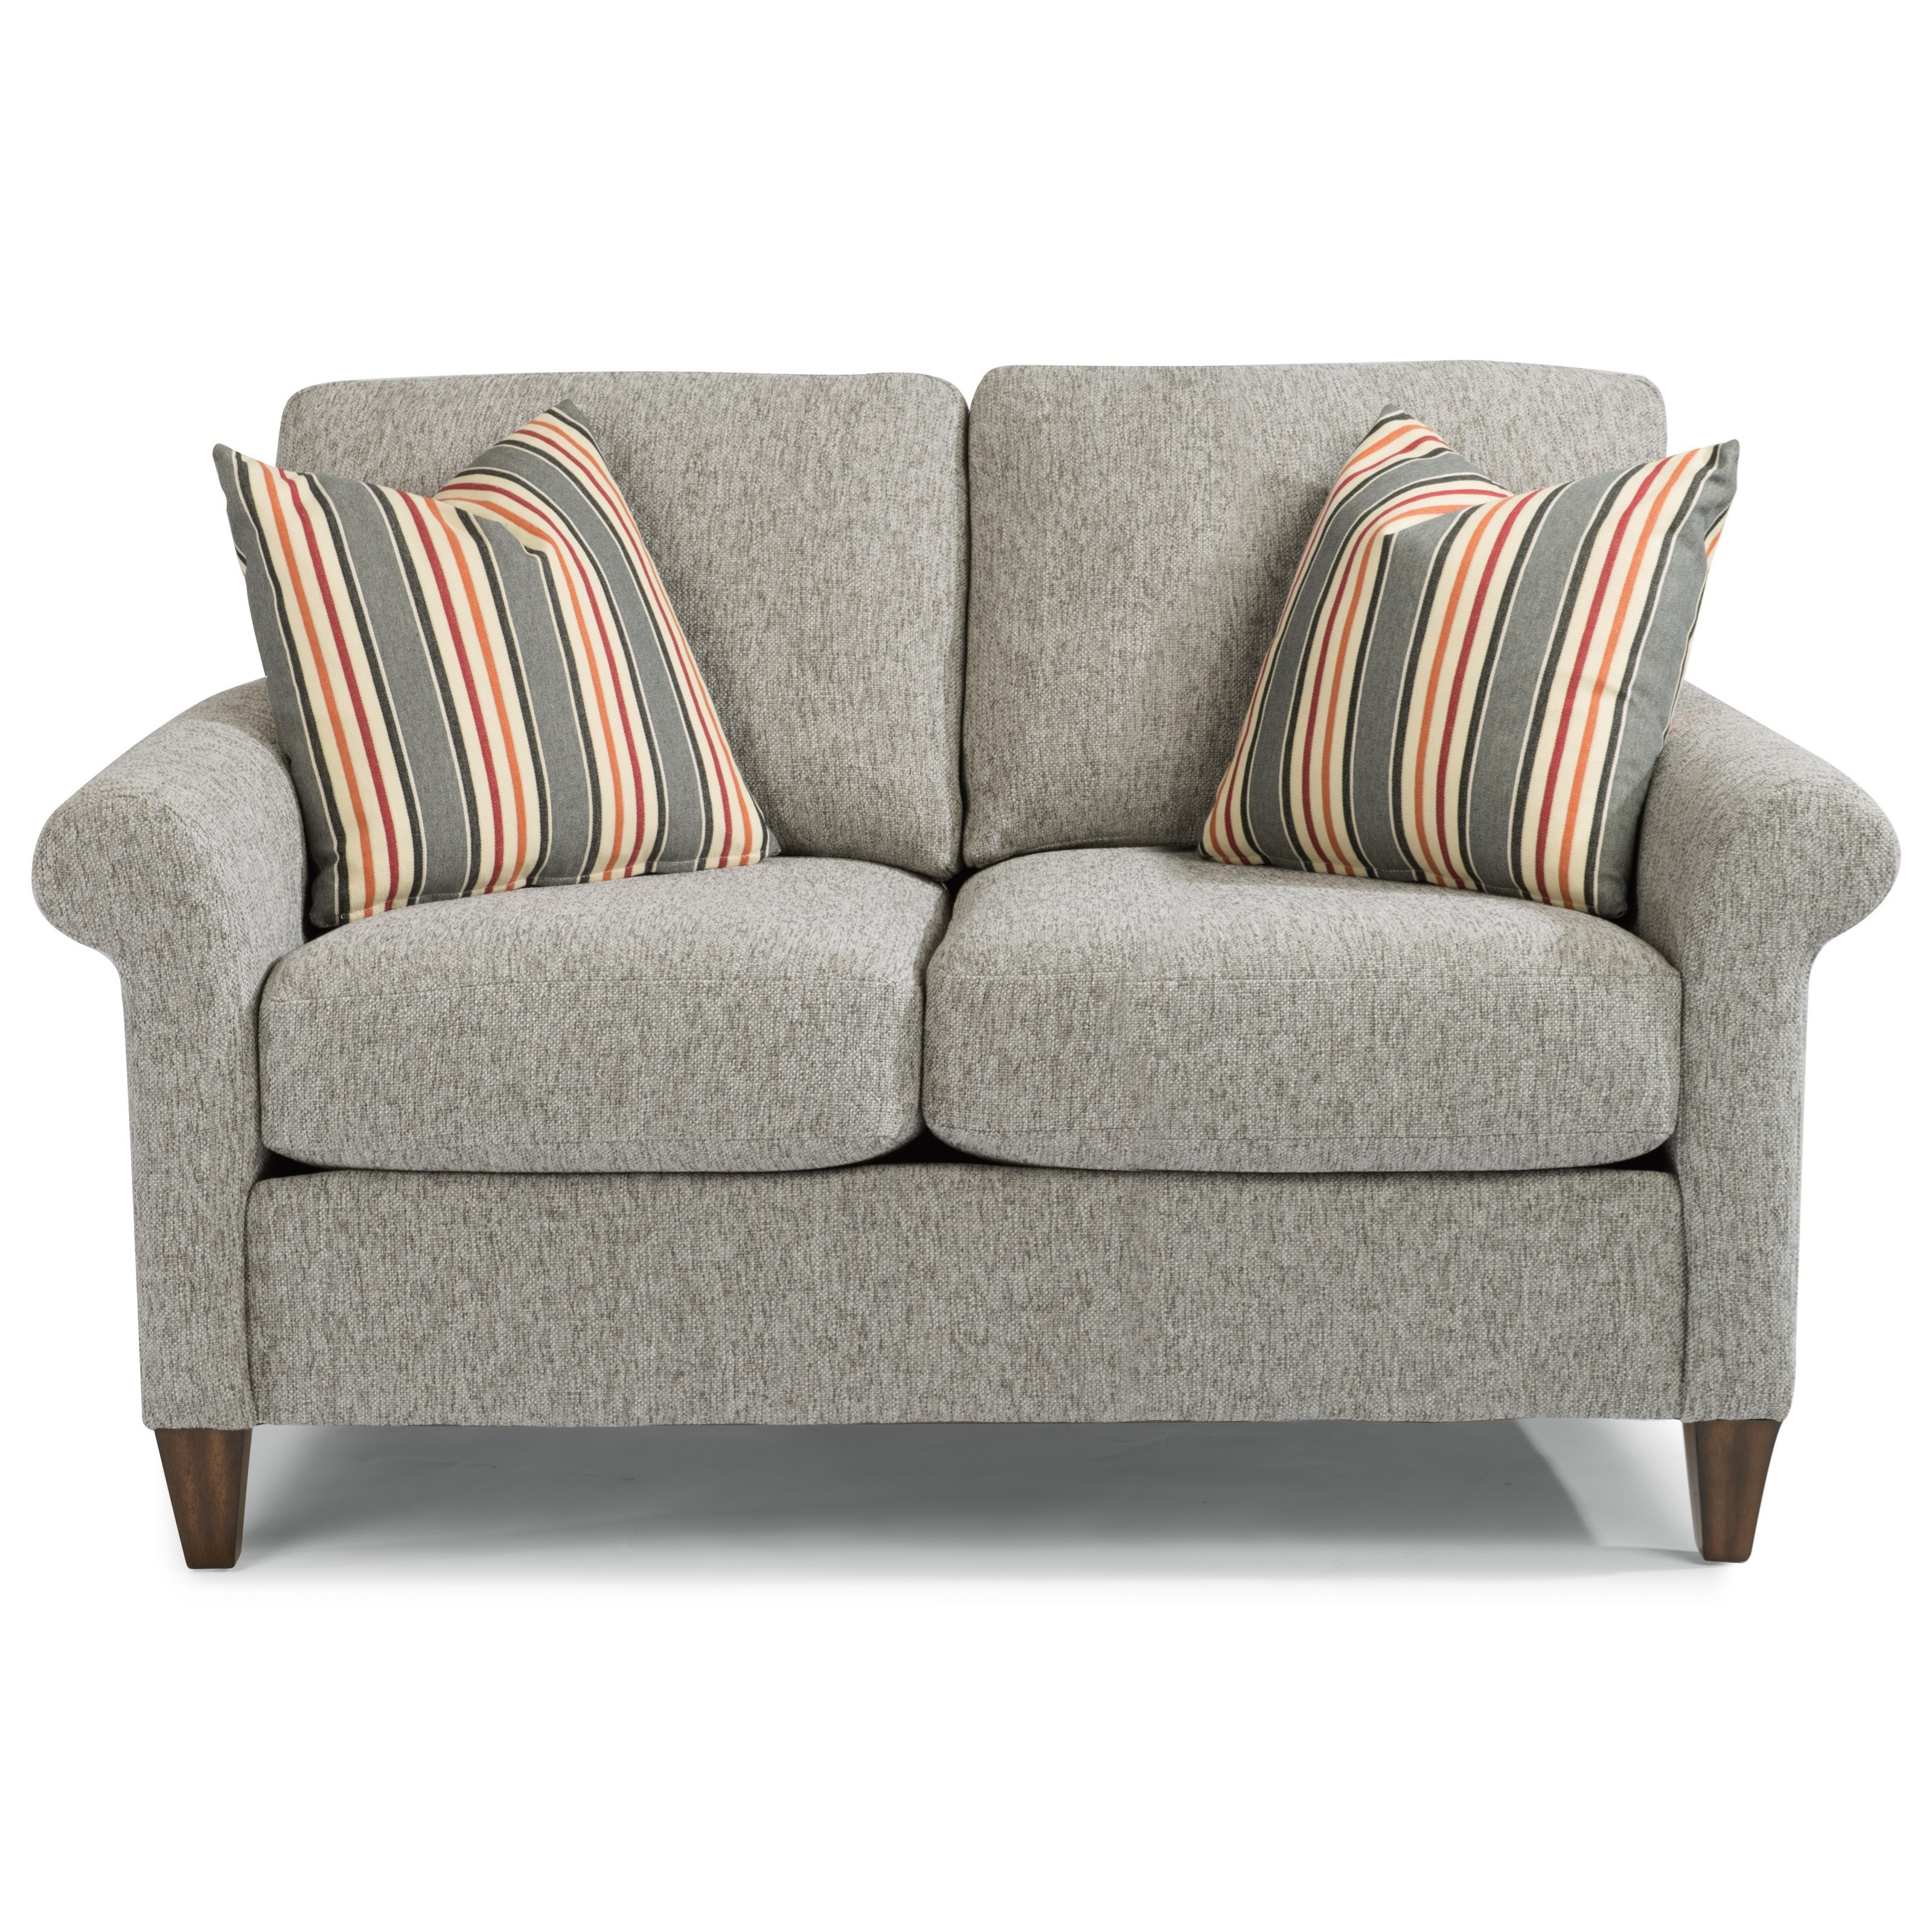 Audrey Loveseat  by Flexsteel at Rooms and Rest